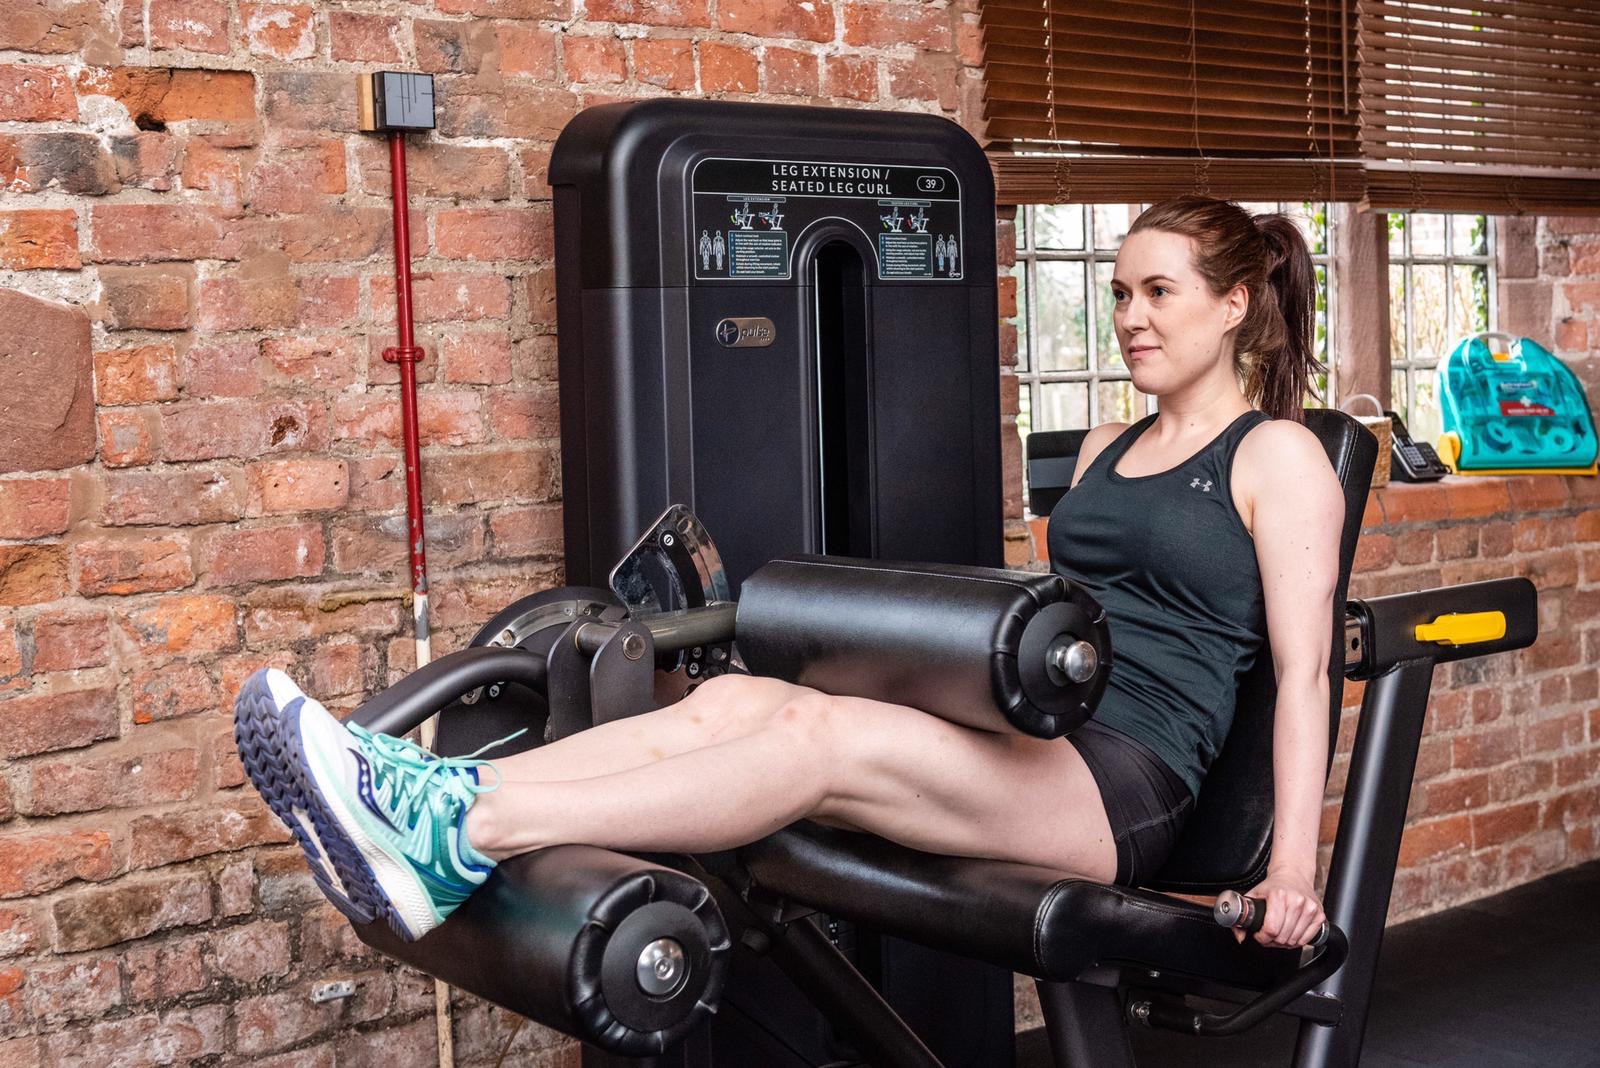 Taking the fear out of personal training